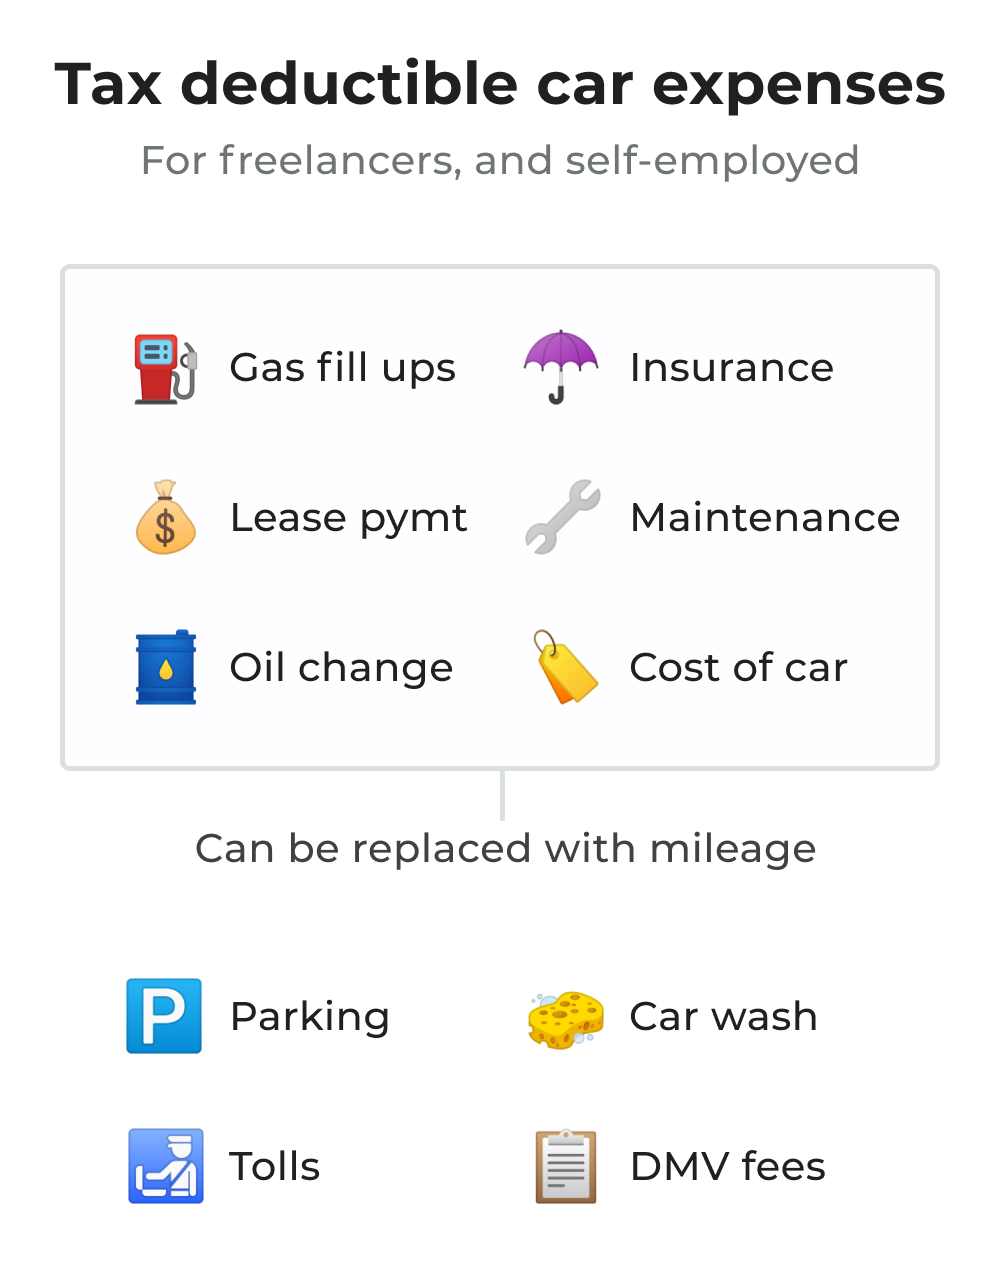 tax deductible car expenses for freelancers